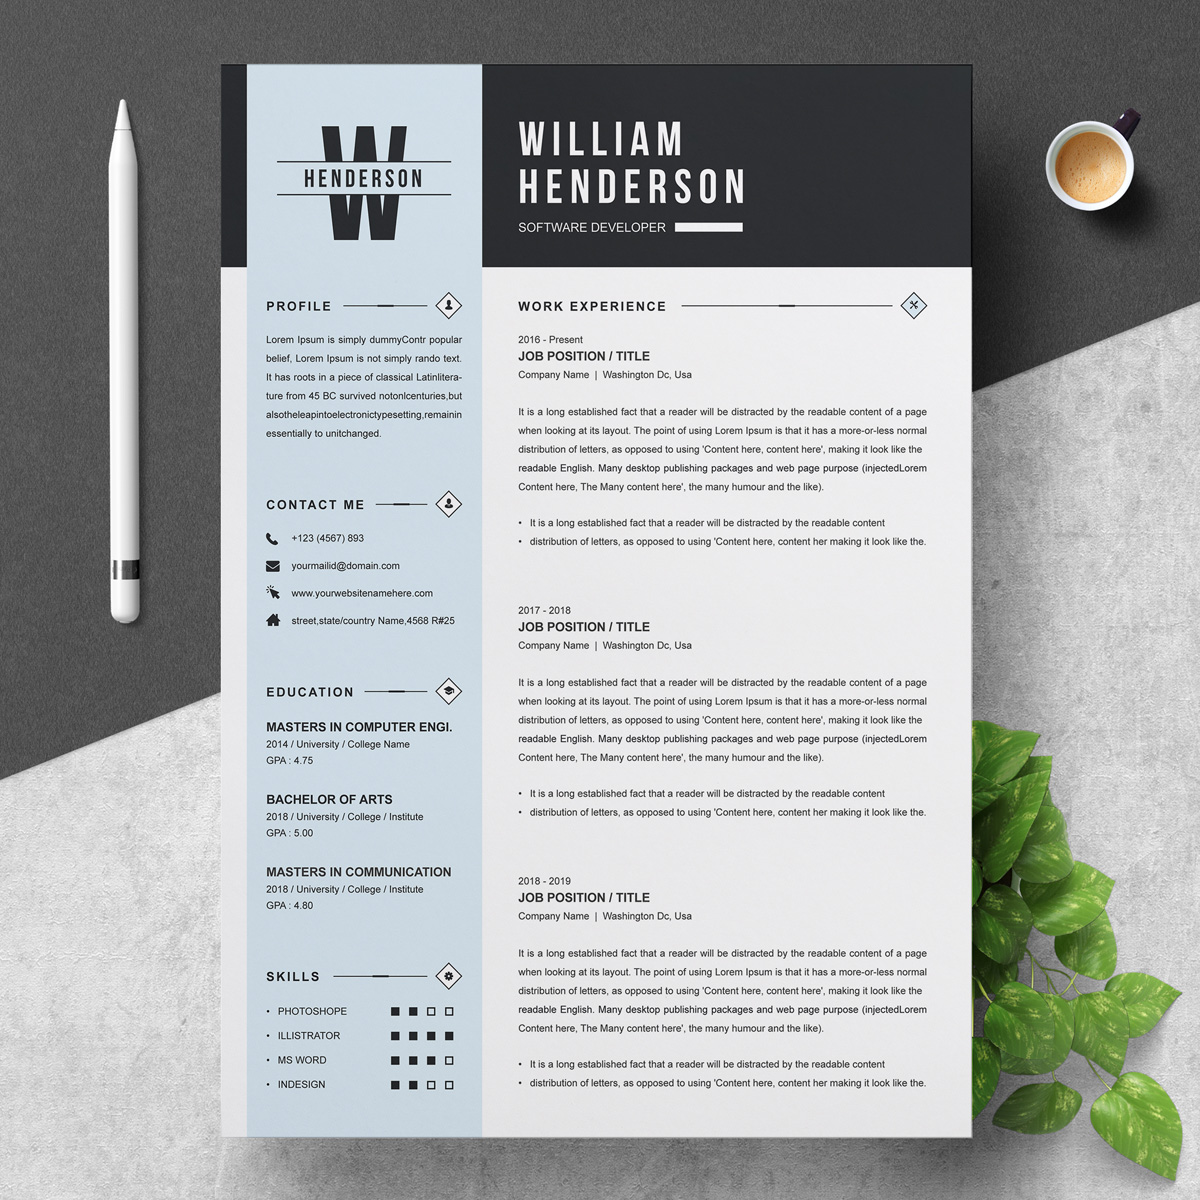 https://s3u.tmimgcdn.com/1860567-1553350388141_01_Clean-Professional-Creative-and-Modern-Resume-CV-Curriculum-Vitae-Design-Template-MS-Word-Apple-Pages-PSD-Free-Download.jpg